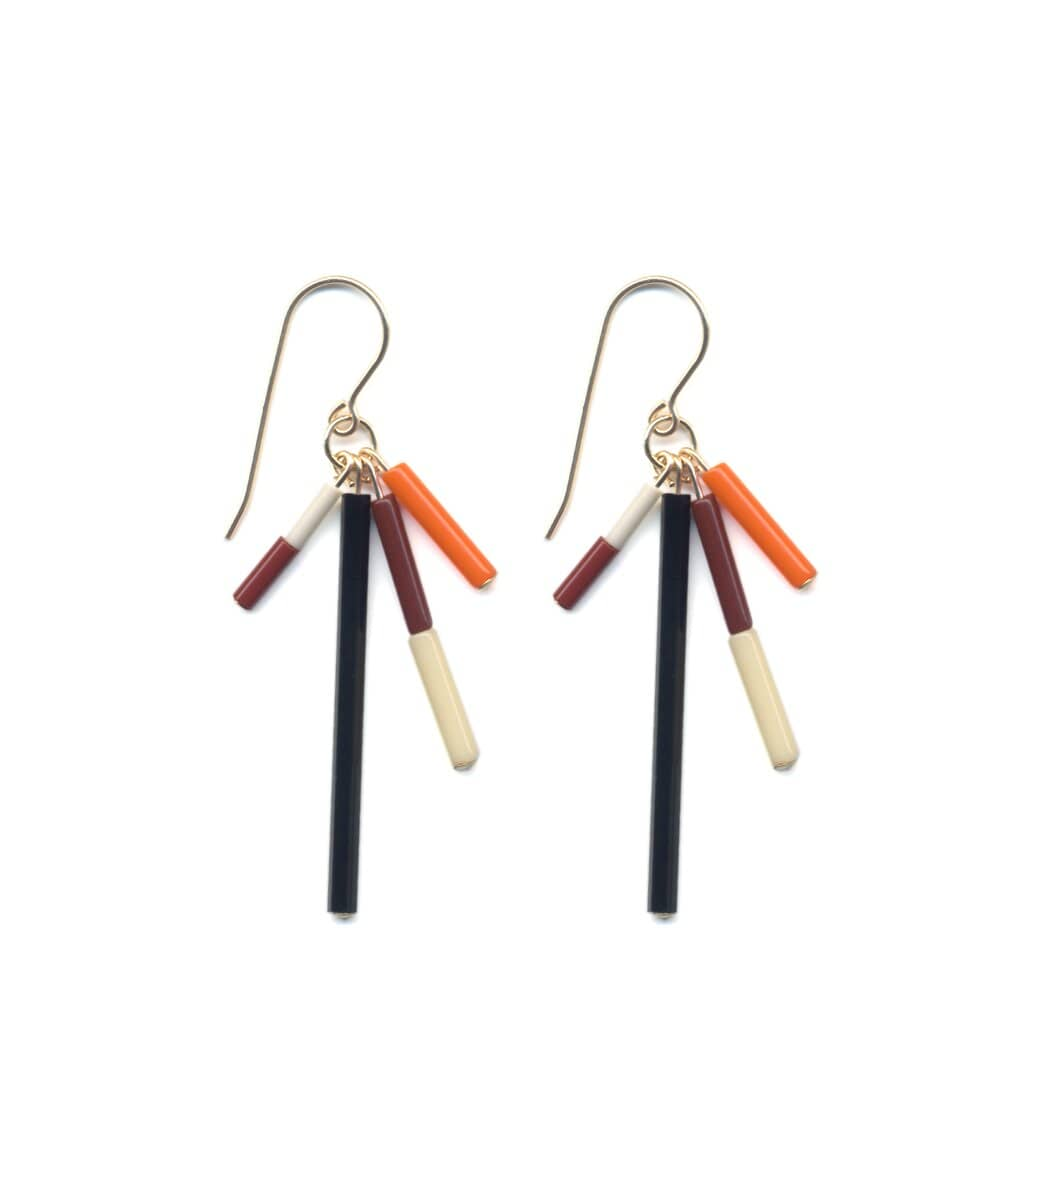 Irk Jewelry I. Ronni Kappos E1678 Fall Bar Burst Earrings